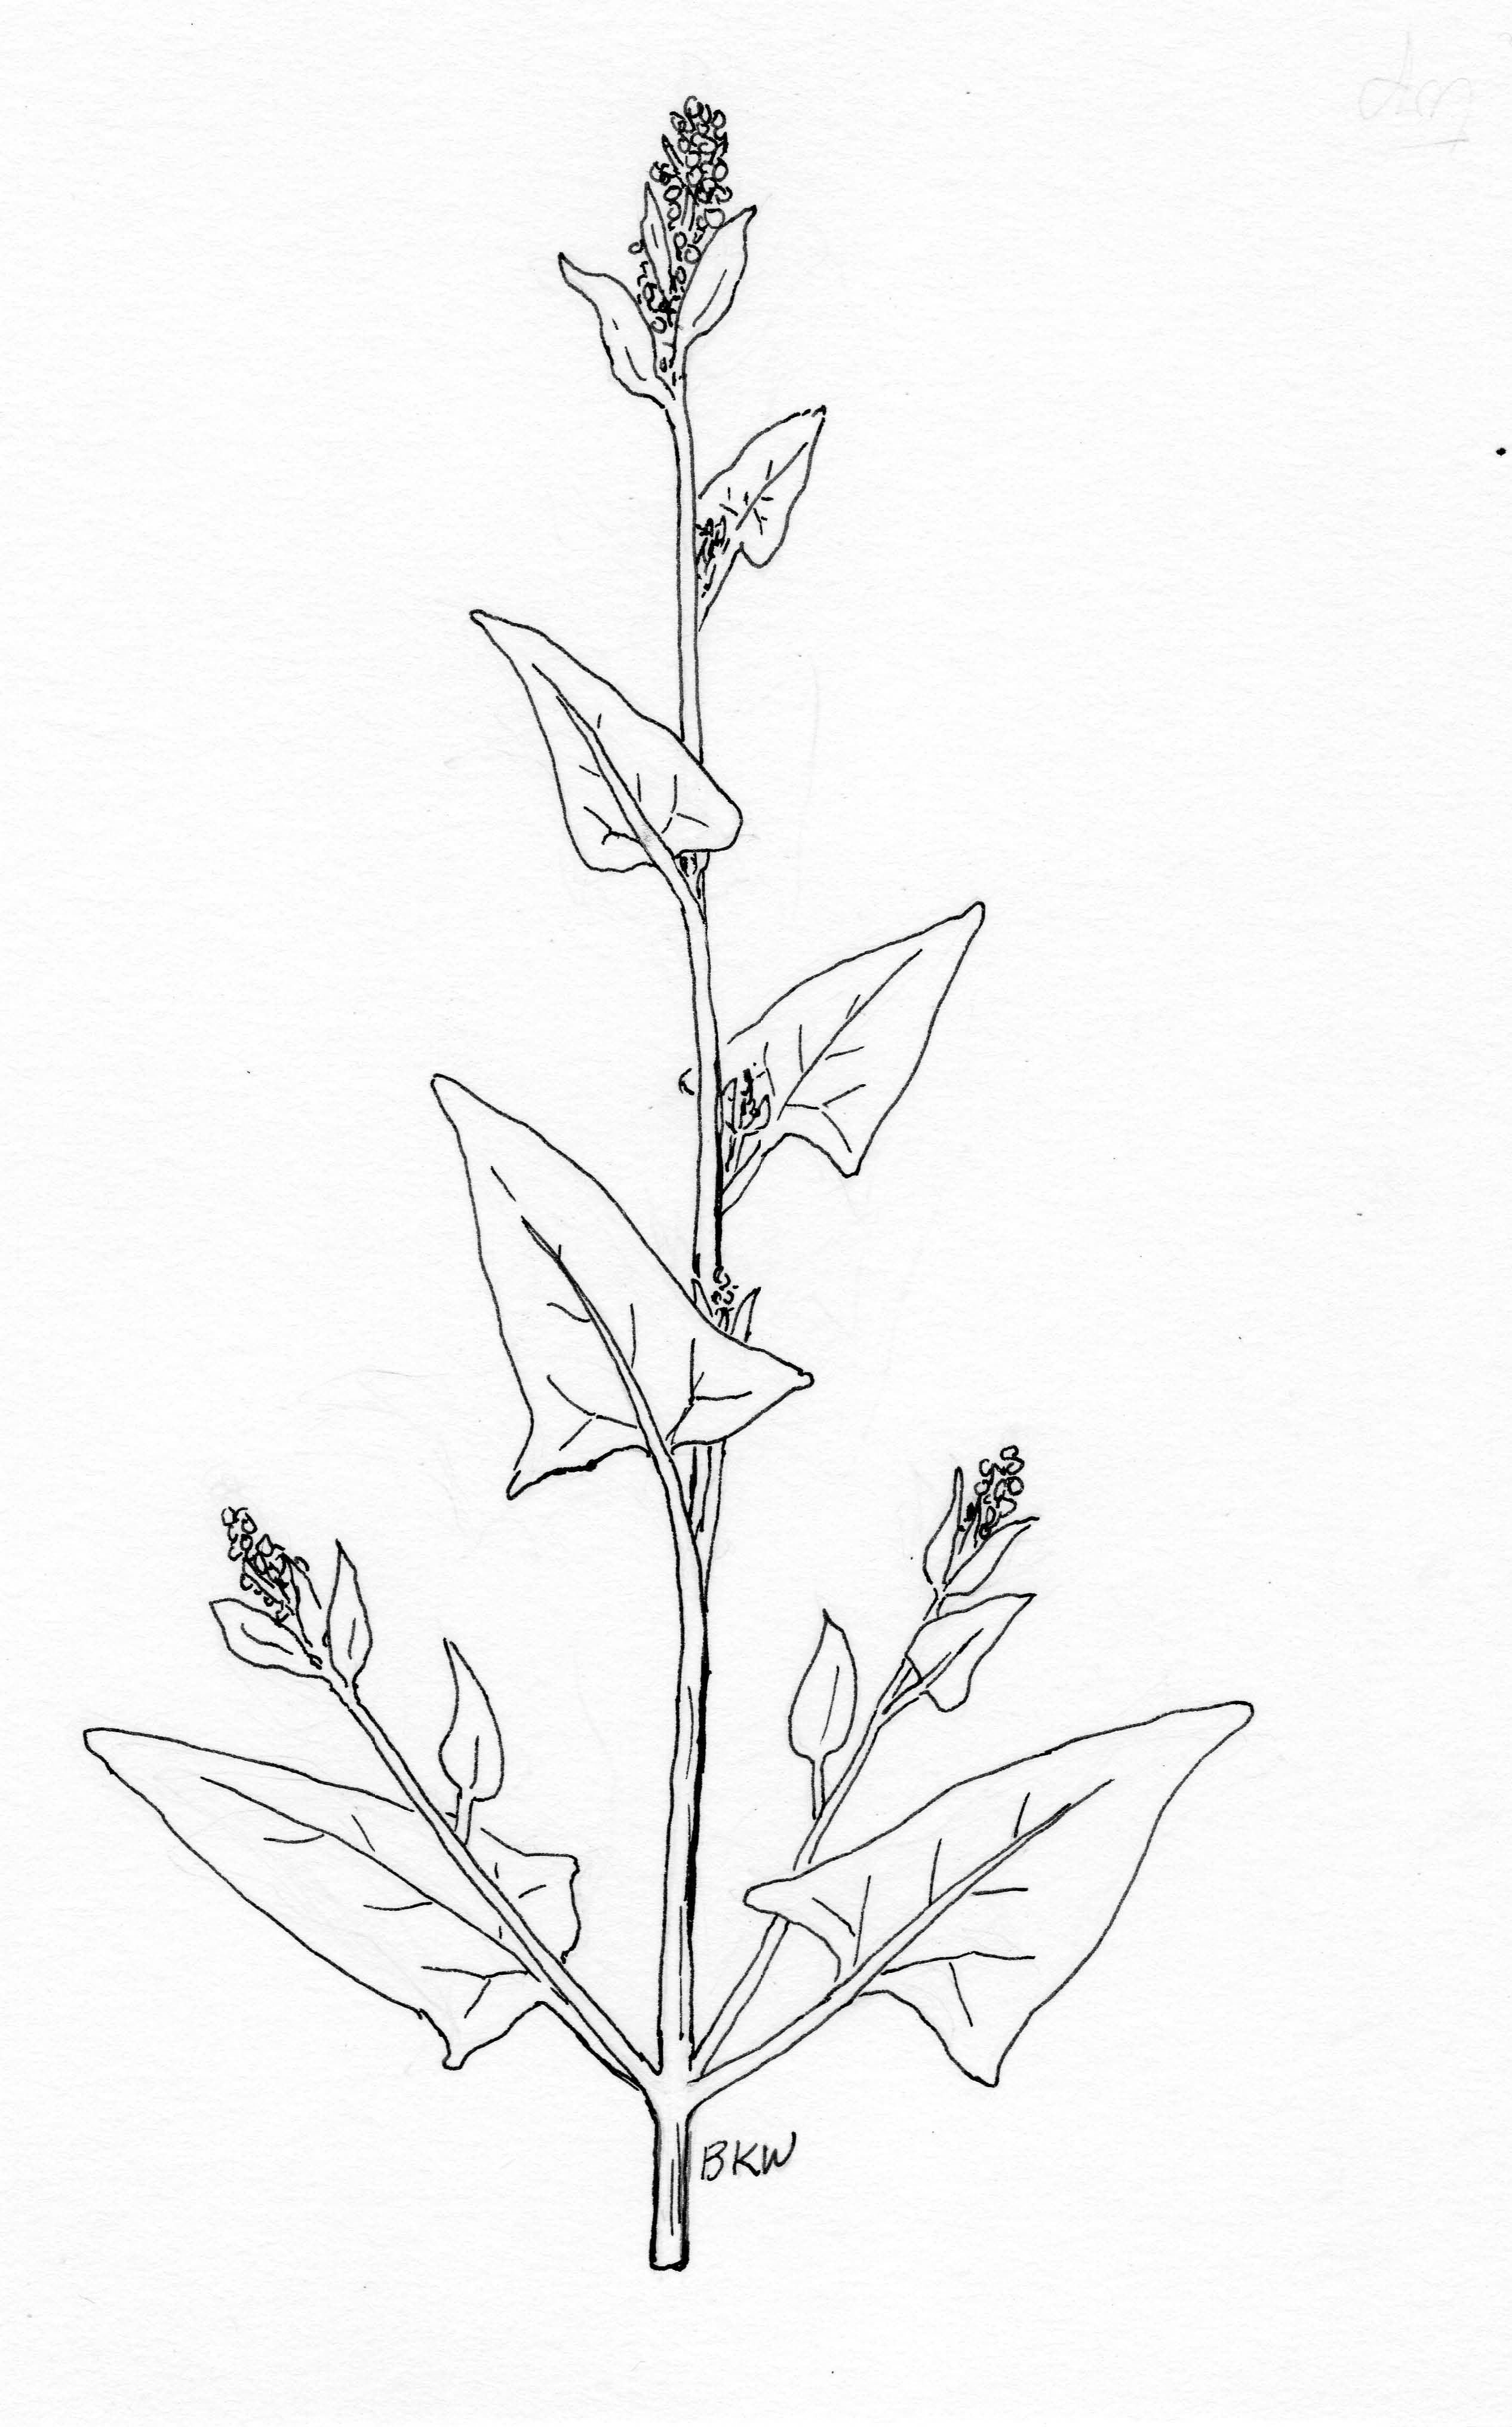 how to draw a goldenrod flower large image for solidago canadensis canada goldenrod draw to how flower goldenrod a